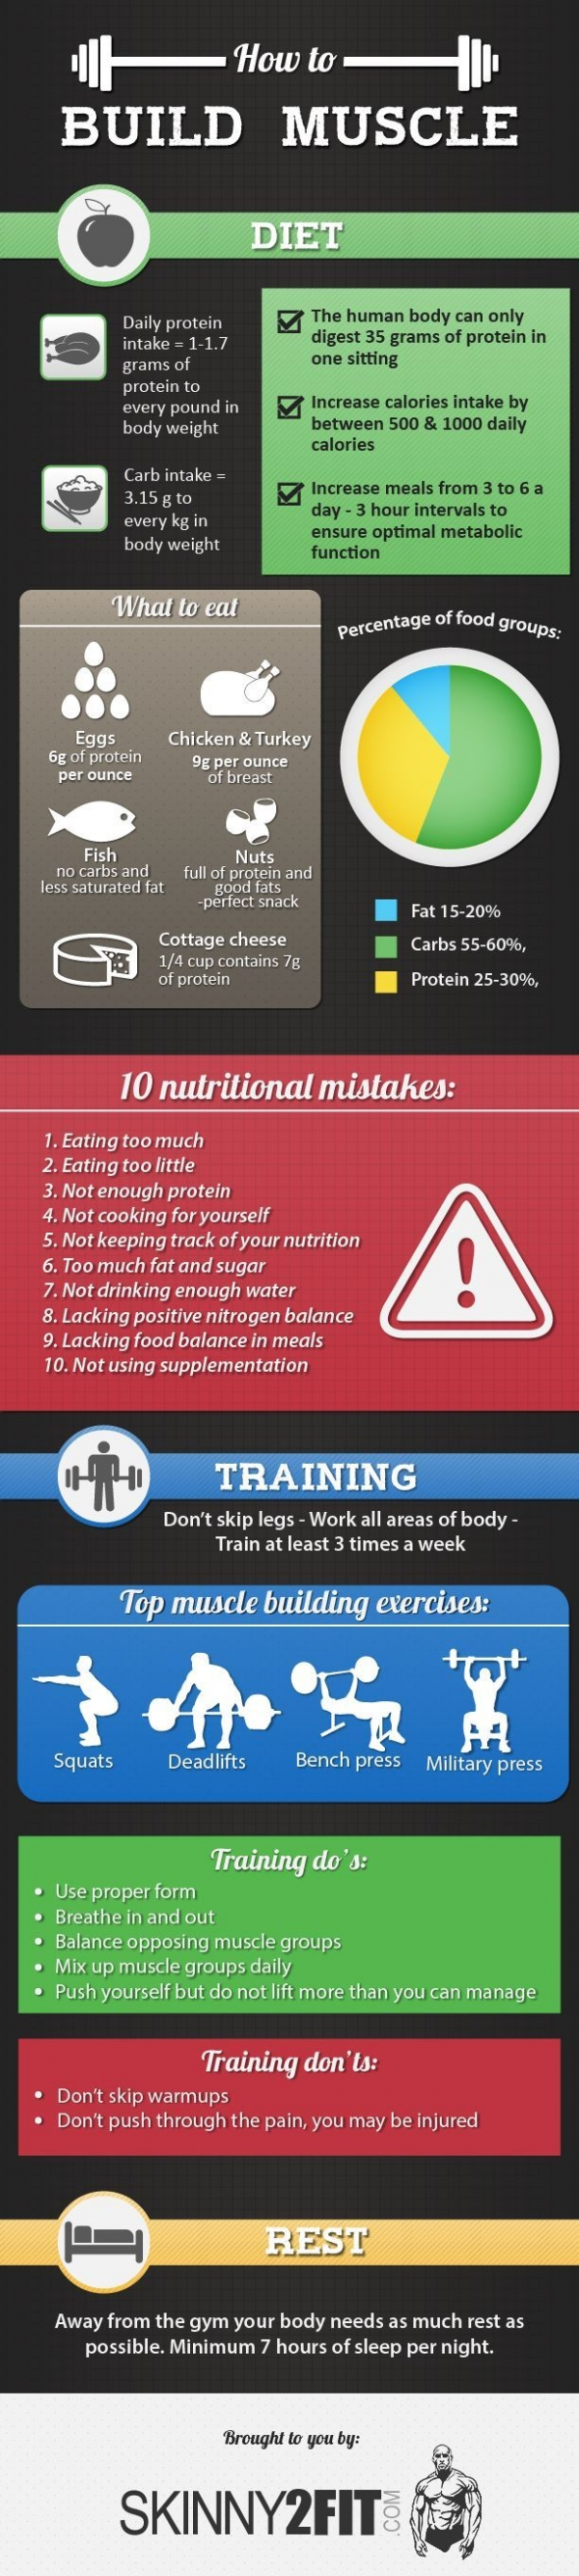 Learn How to Build Muscle